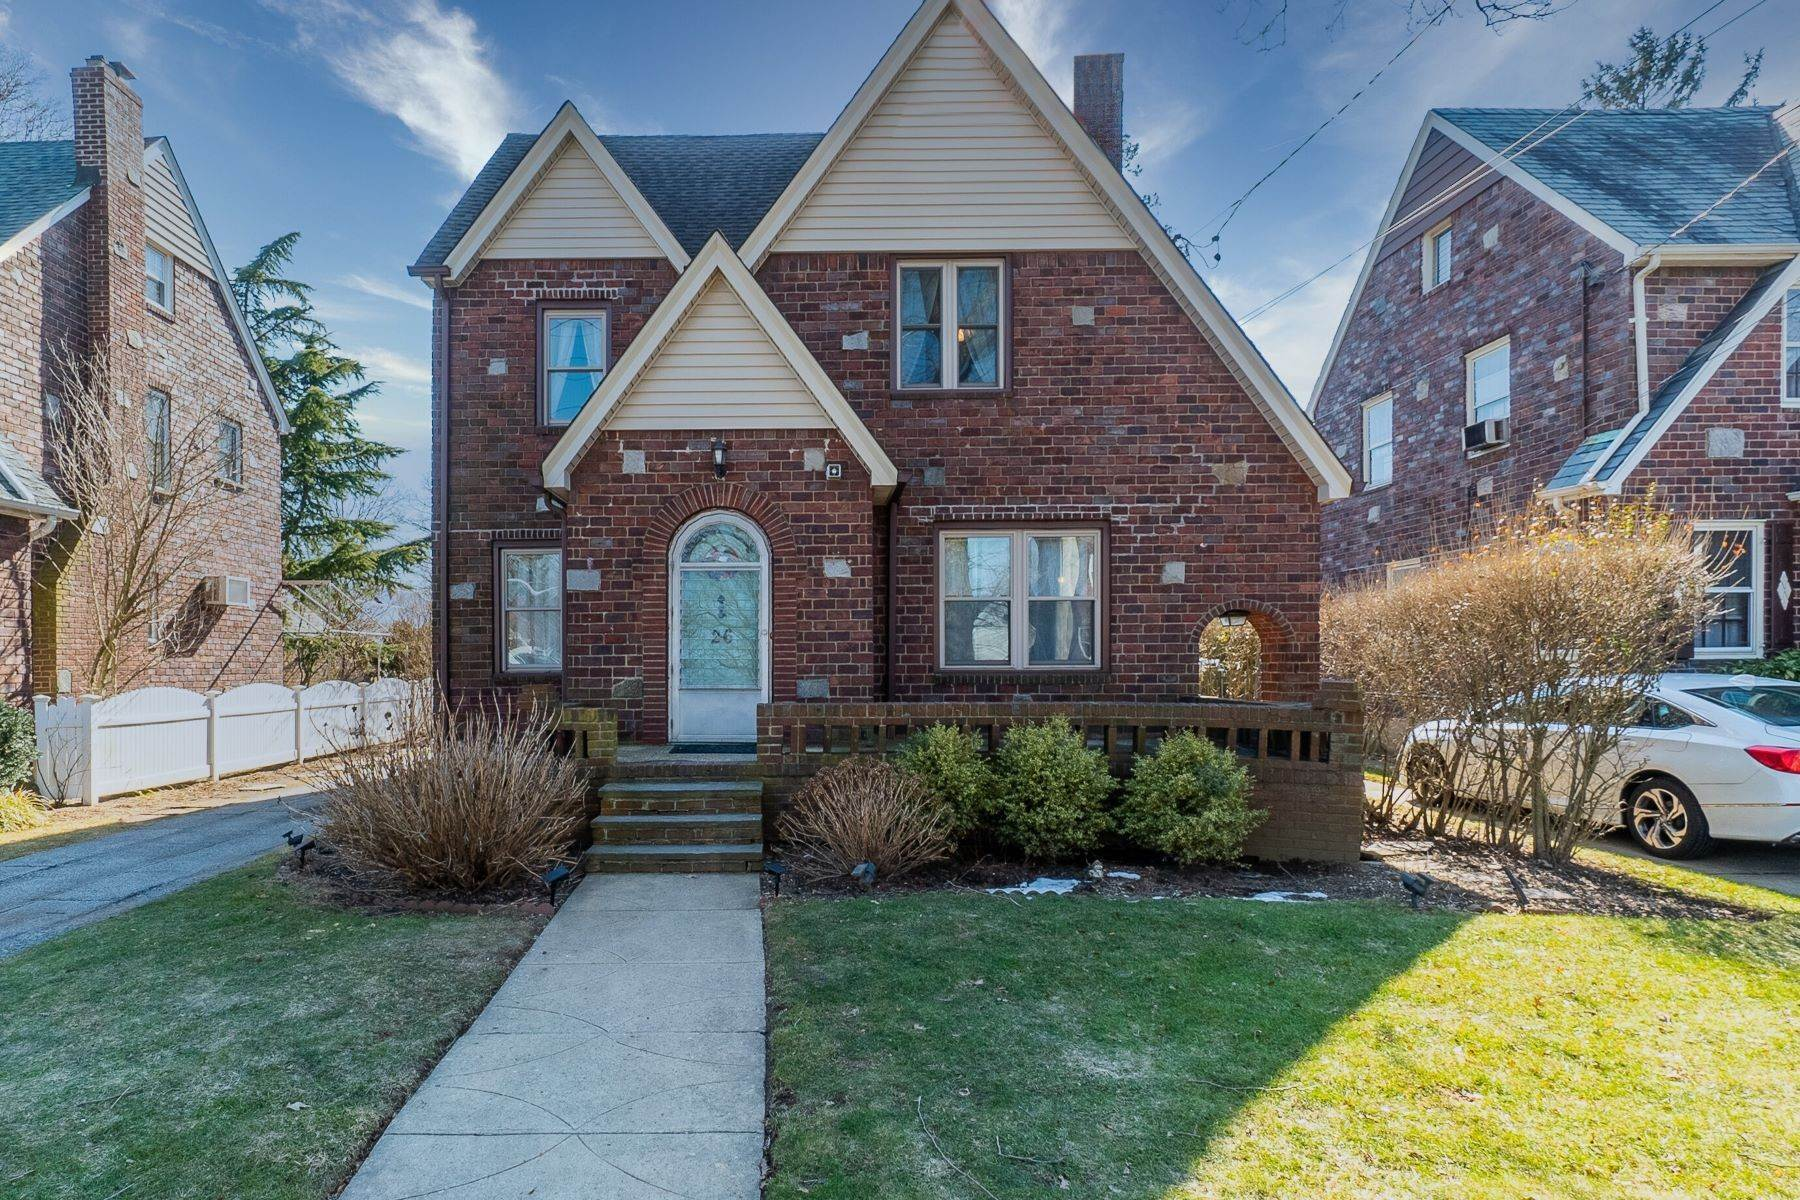 Single Family Homes for Sale at 26 Cisney Avenue, Floral Park, Ny, 11001 26 Cisney Avenue Floral Park, New York 11001 United States